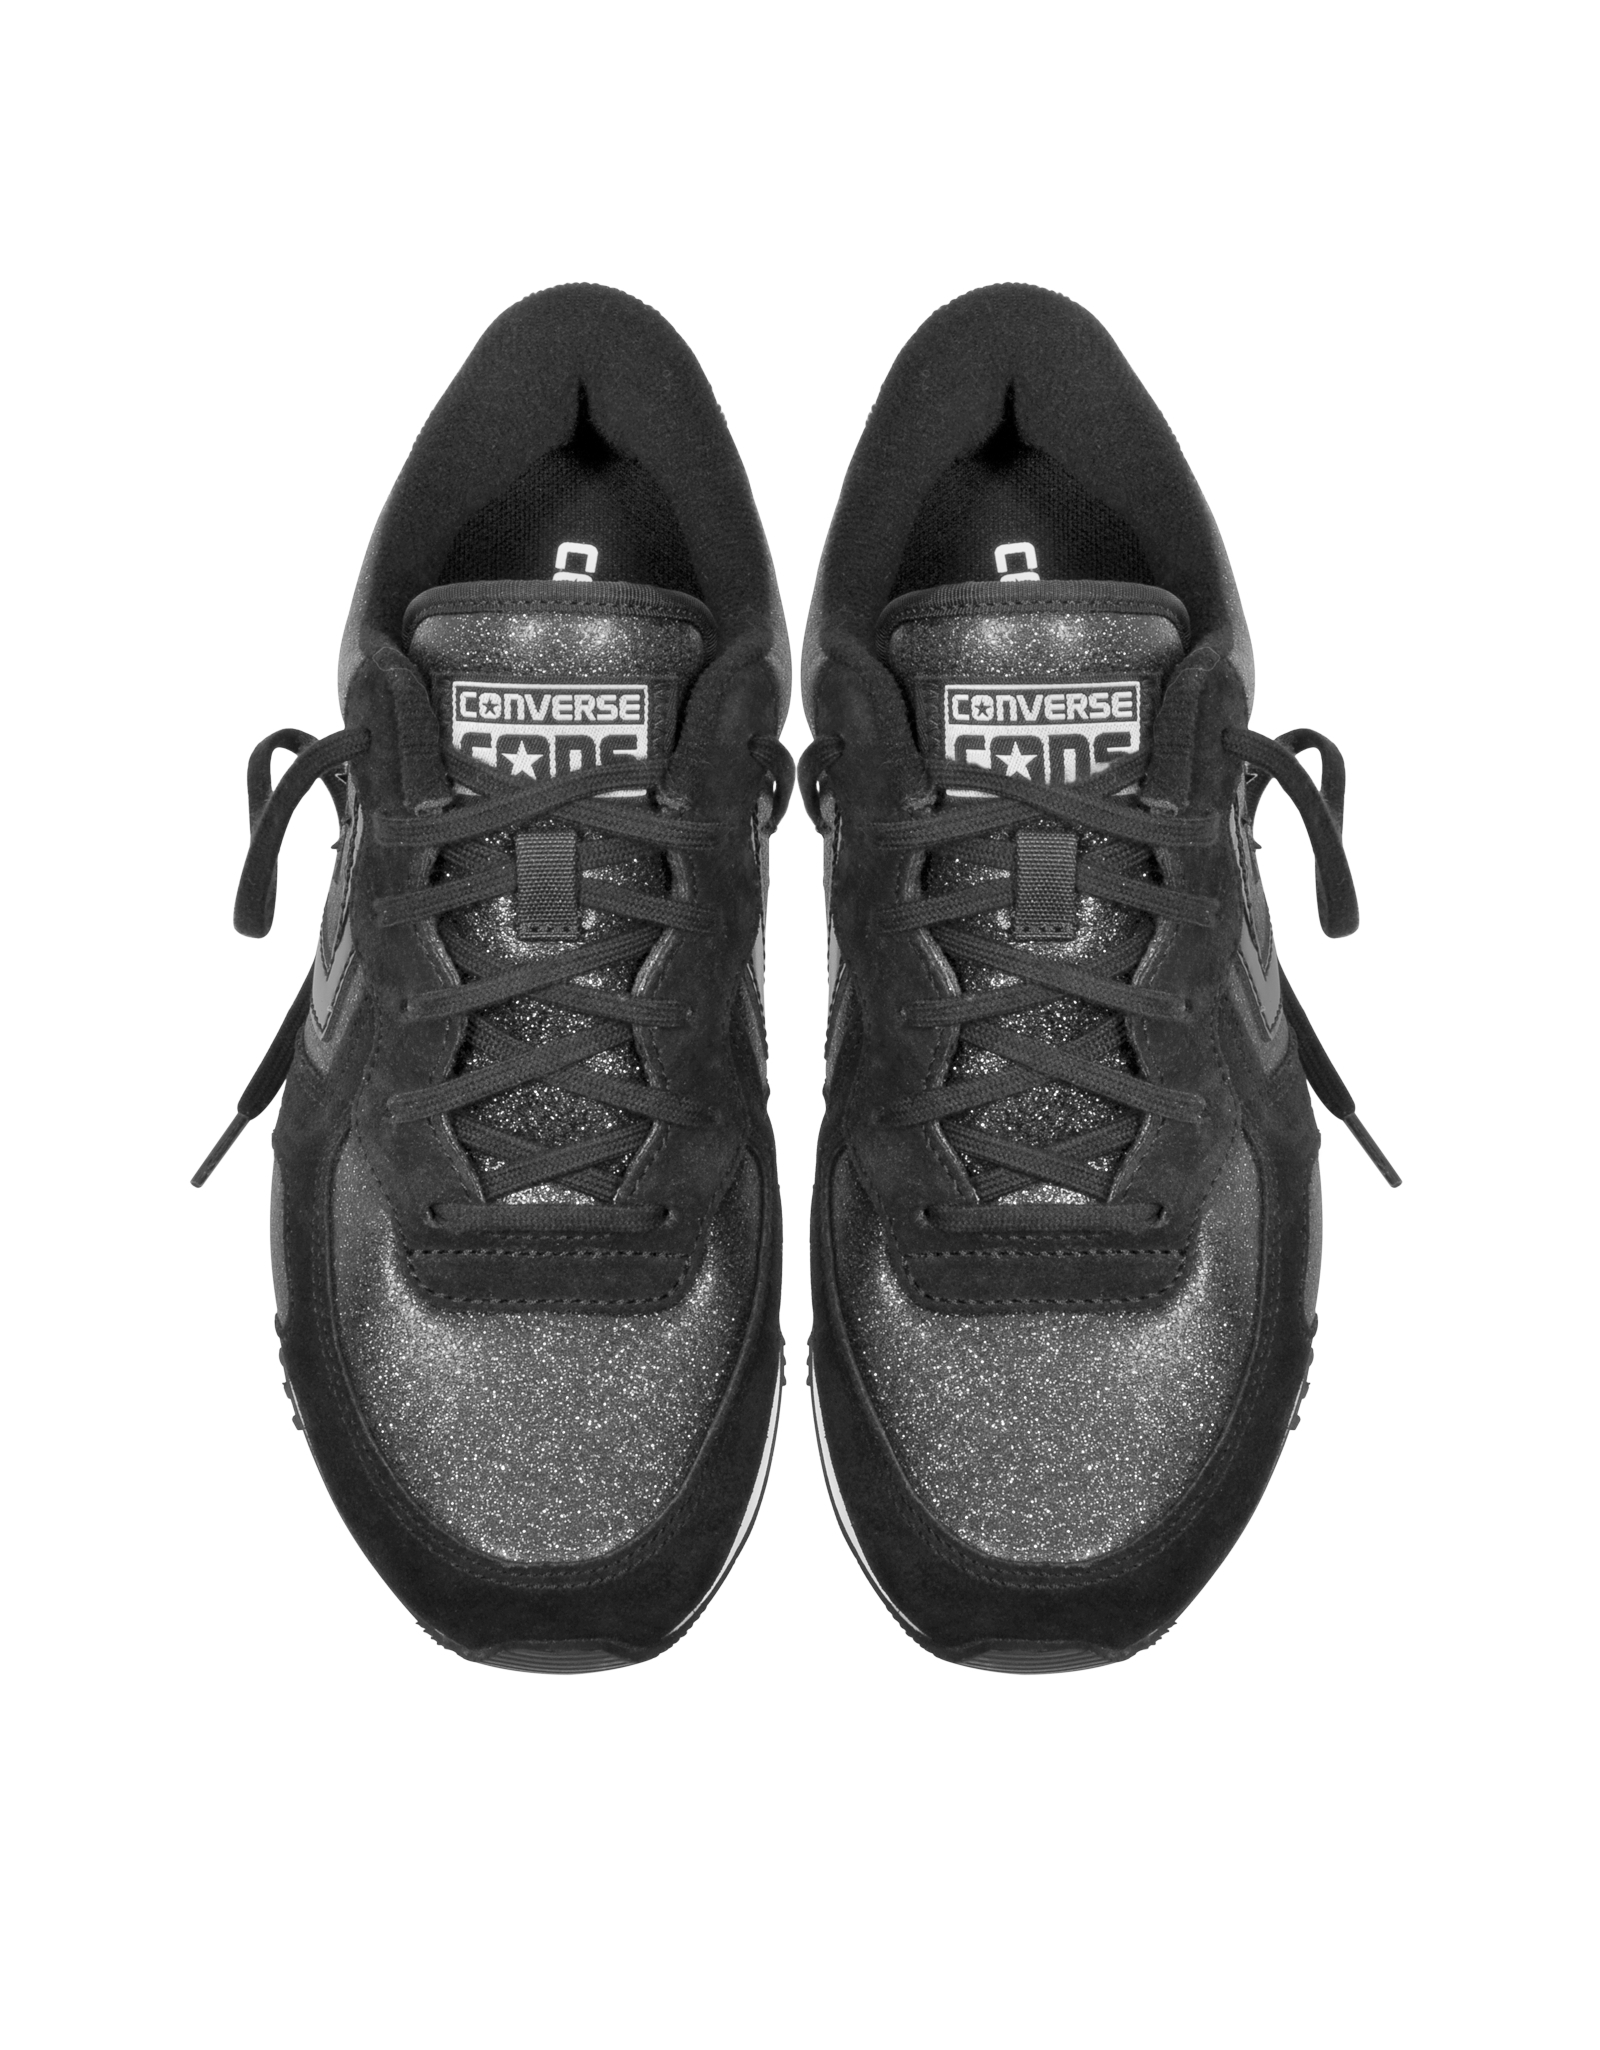 86d1ad2a37b514 Converse Auckland Racer Ox Black Glam Fabric And Suede Sneaker W ...